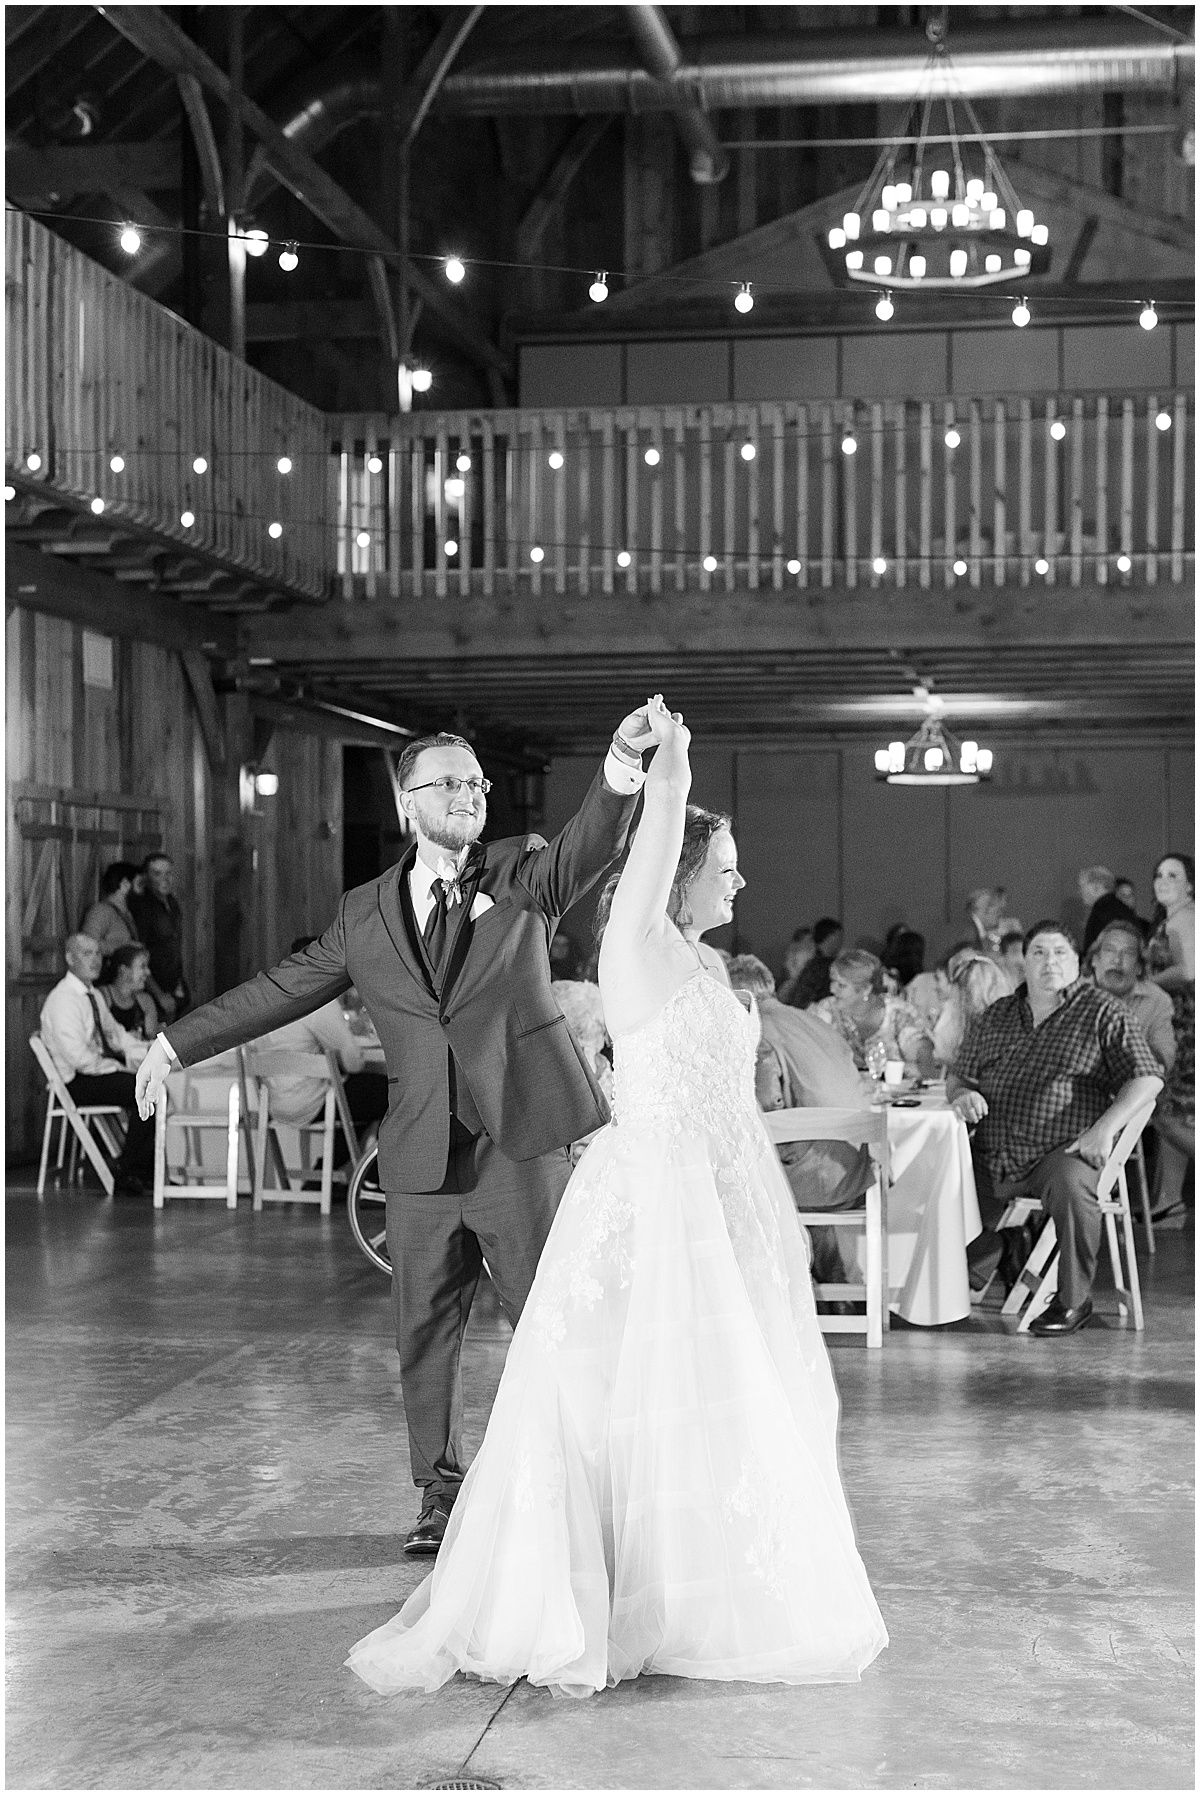 Bride and groom first dance at County Line Orchard wedding reception in Hobart, Indiana